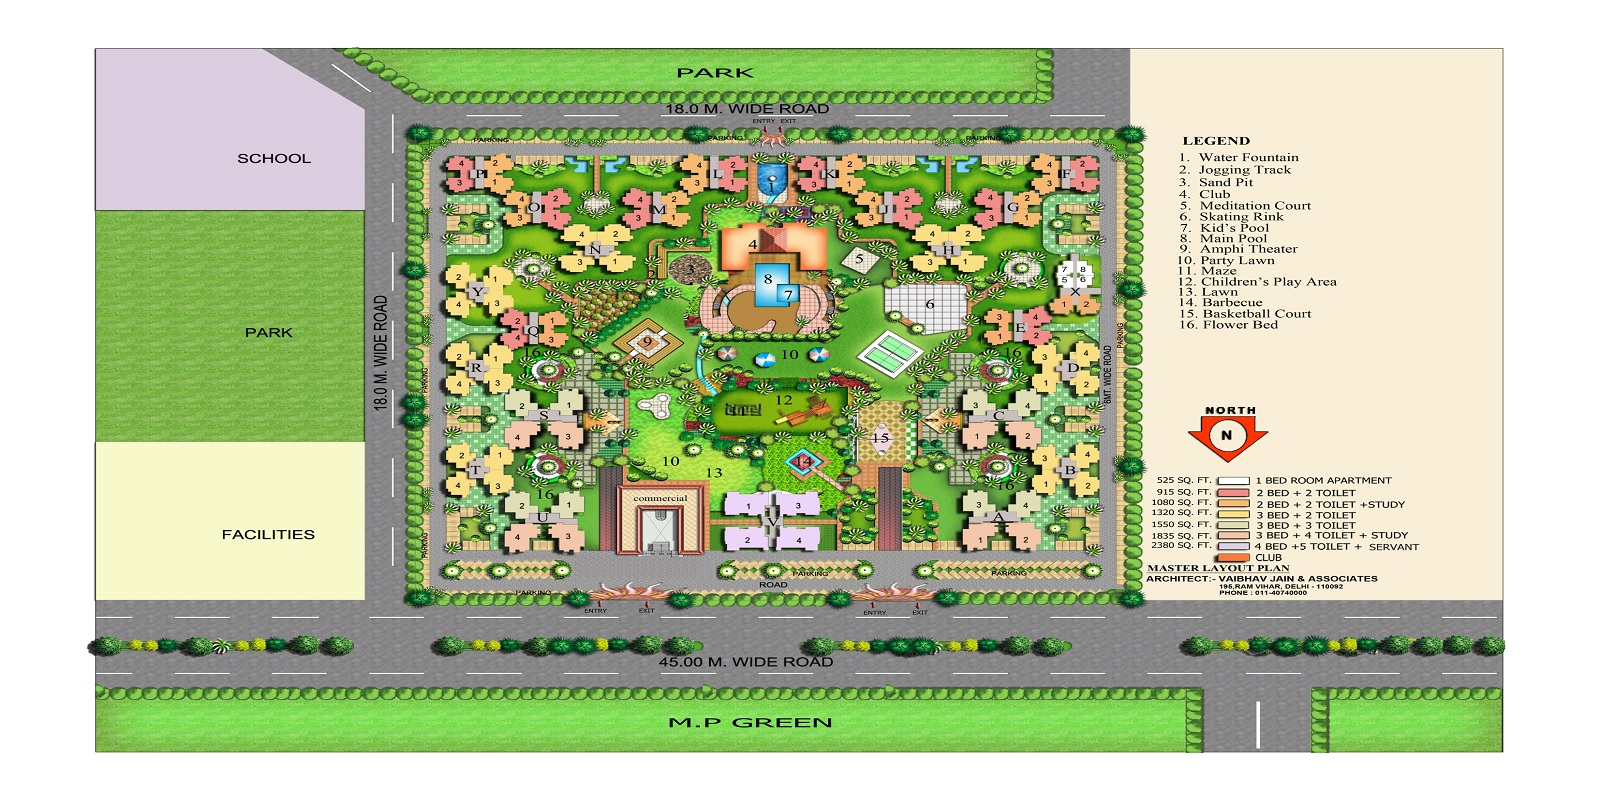 master-plan-image-Picture-nimbus-the-hyde-park-3020882